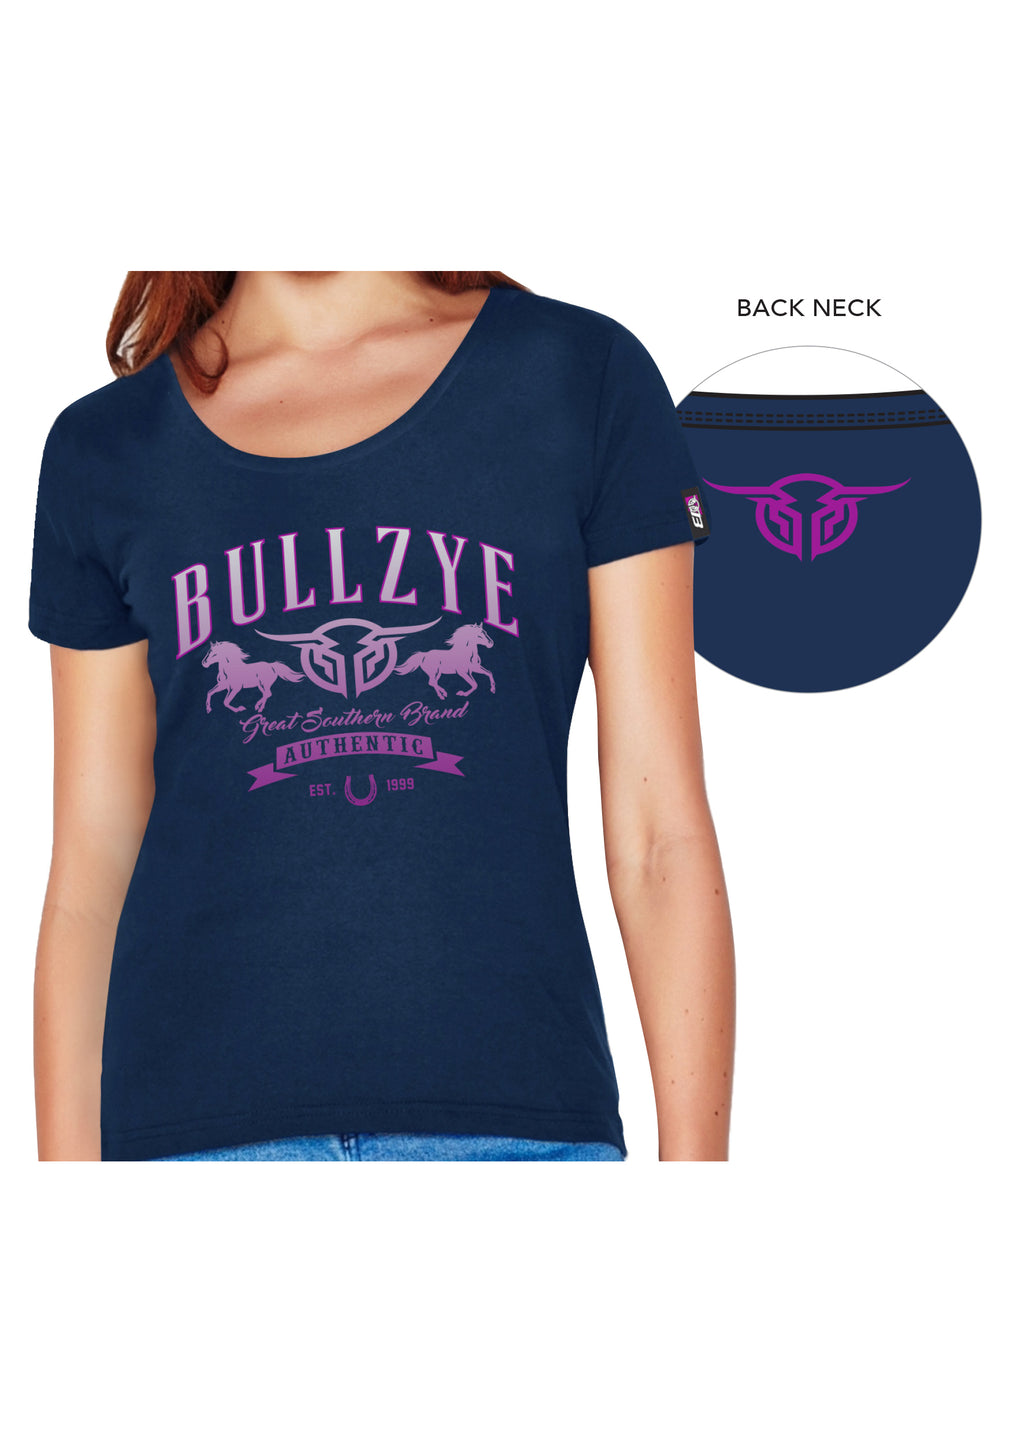 Bullzye | Womens | Tee | Great Southern | Navy